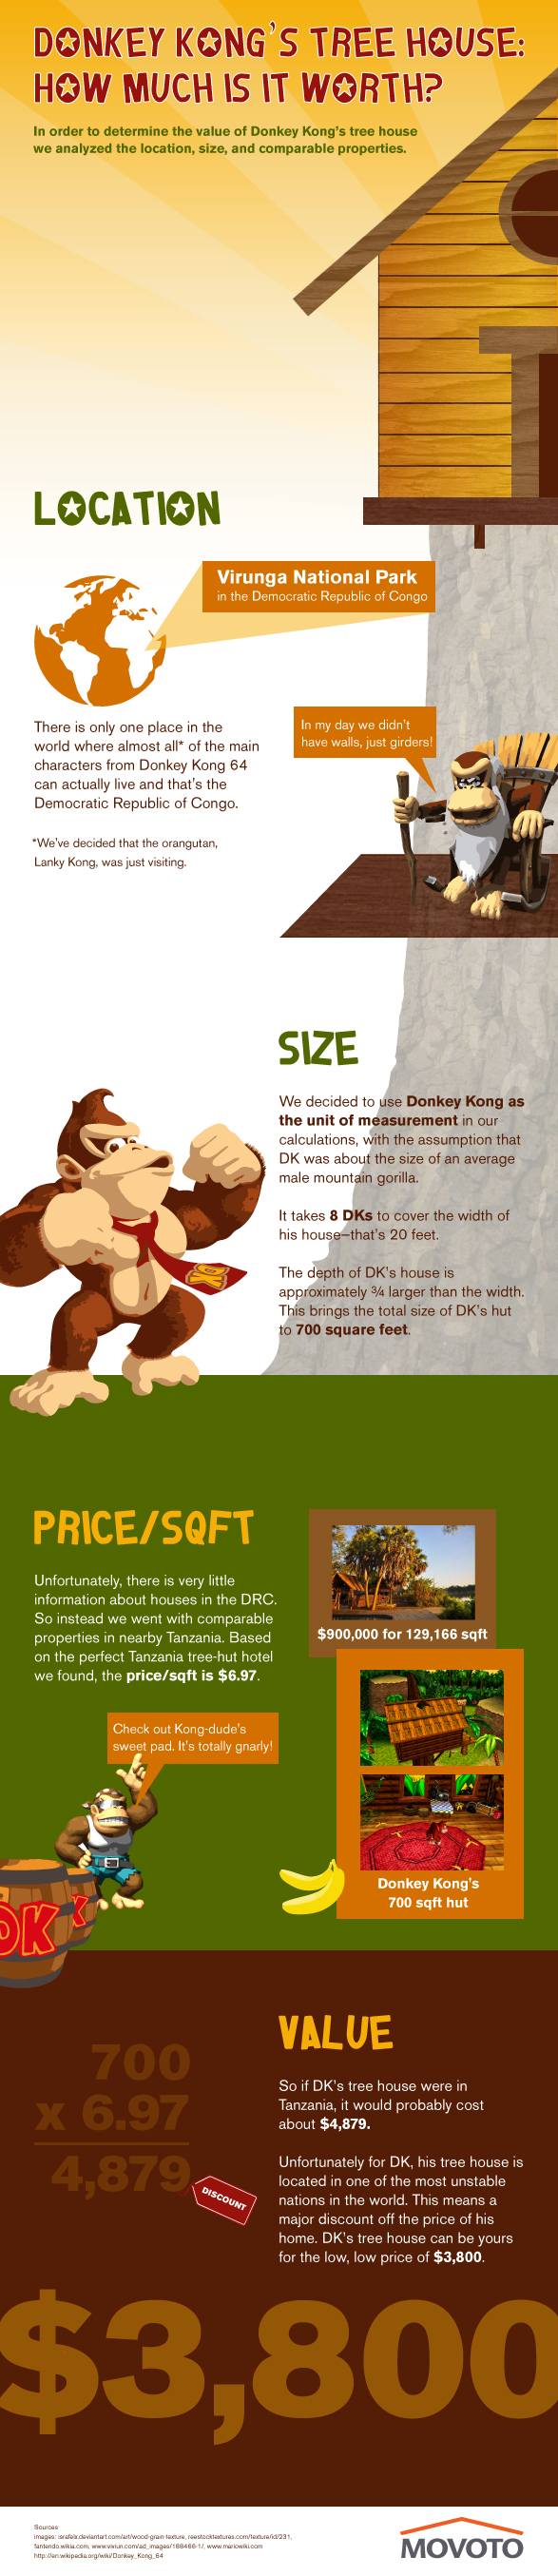 Donkey Kong's Tree House For Sale